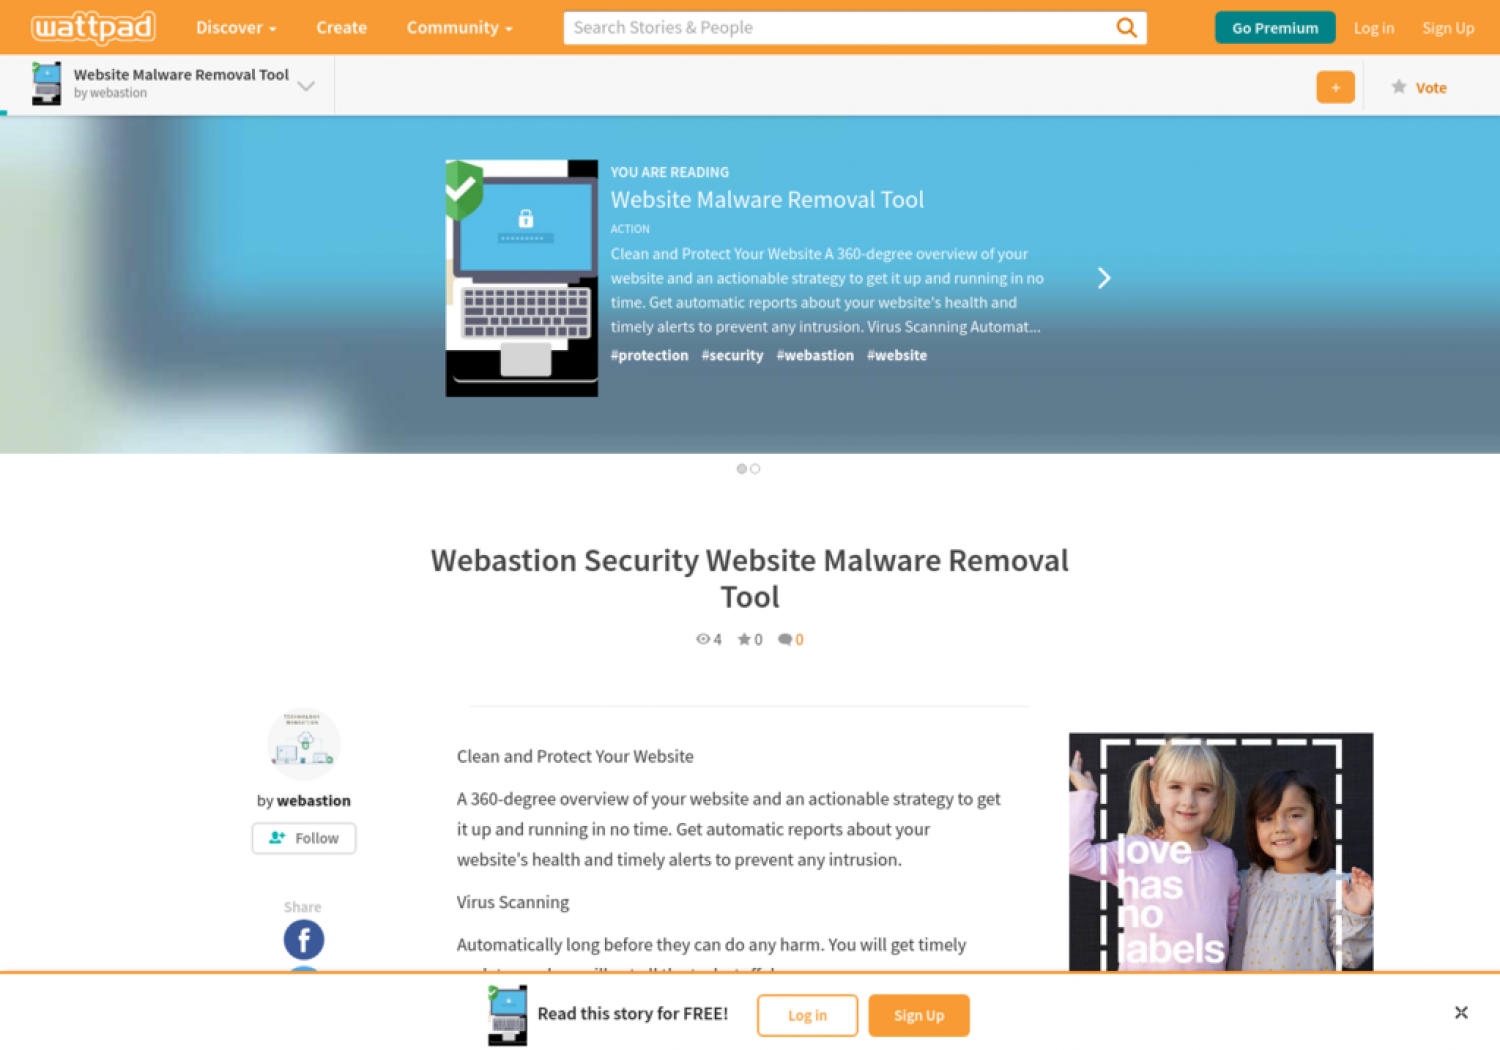 Website Malware Removal Tool - Webastion Security -wattpad Infographic